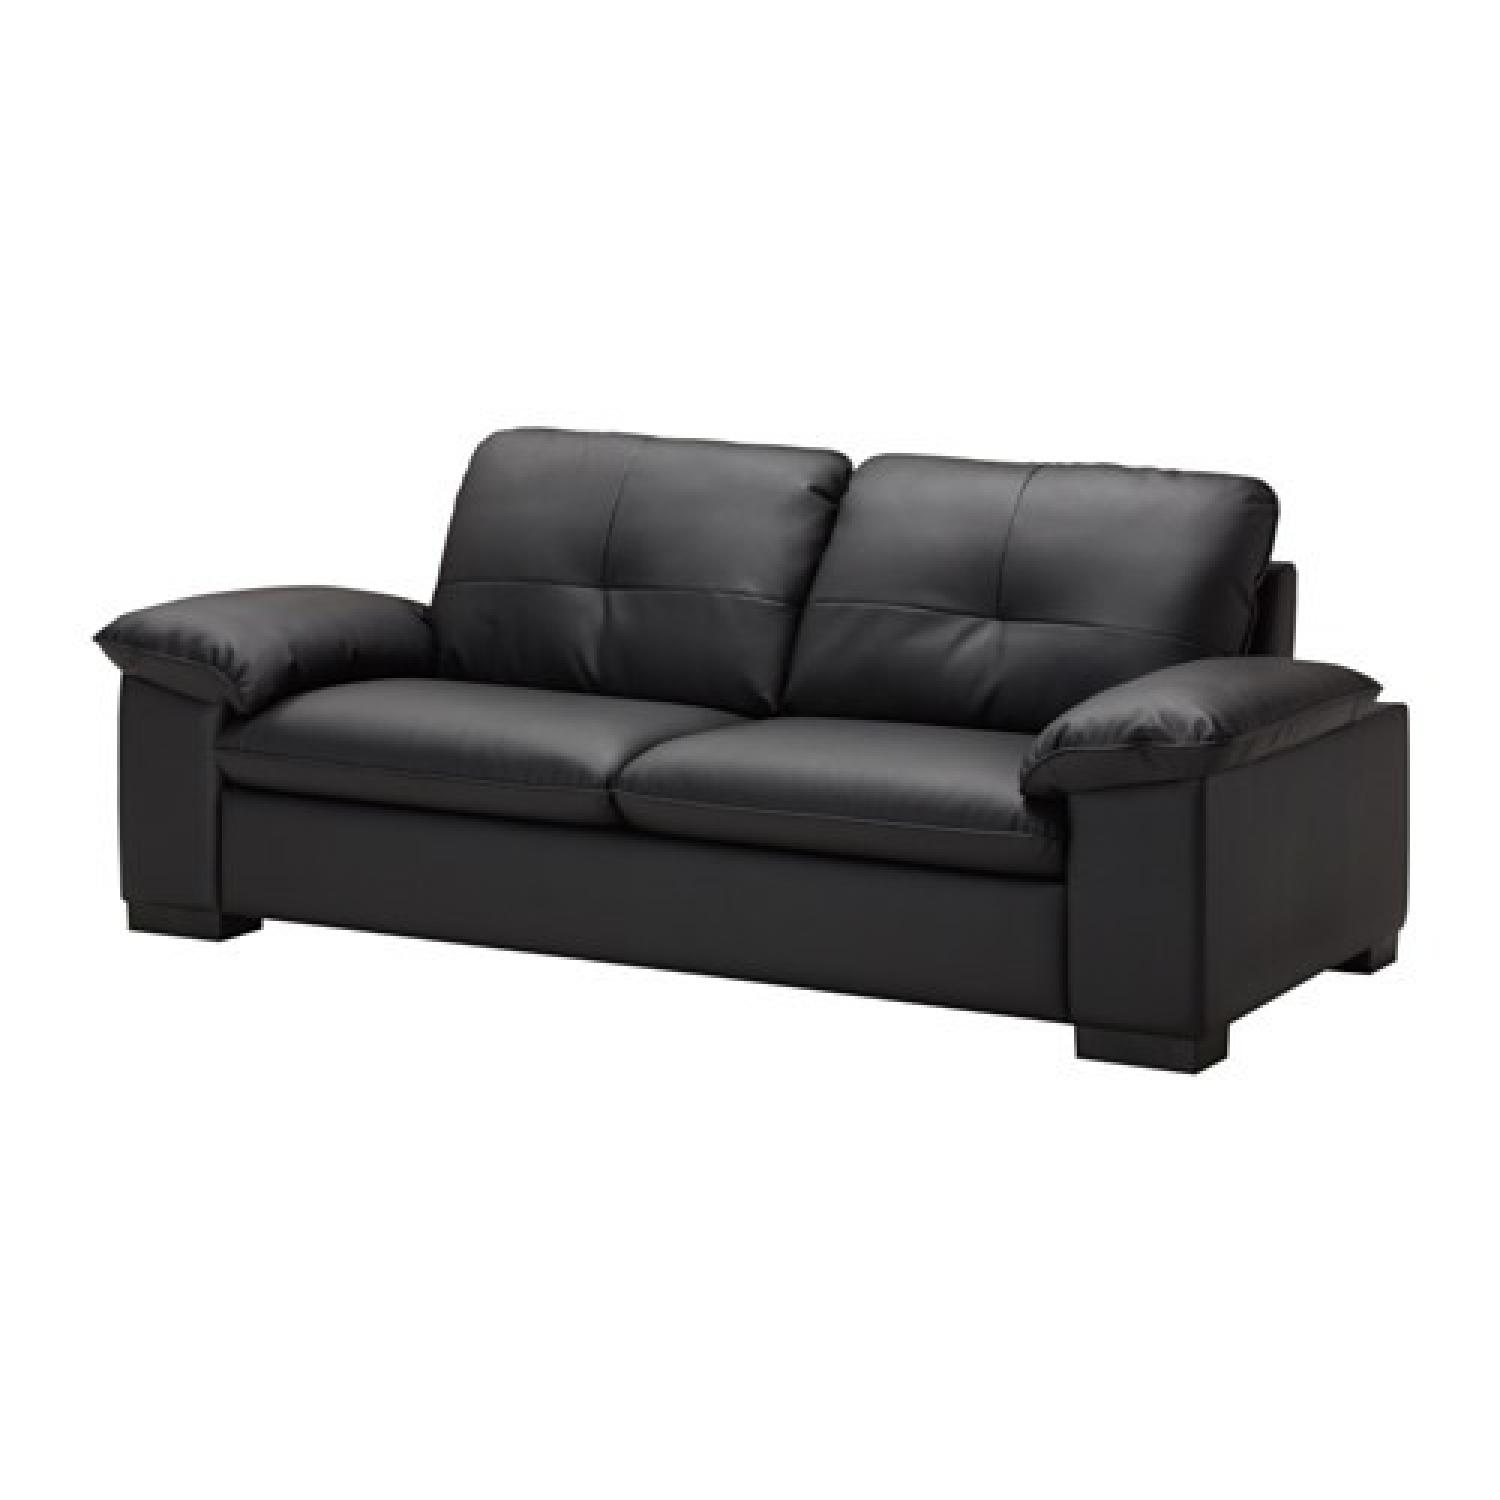 black leather chair ikea swing mumbai dagstorp 2 seat sofa aptdeco